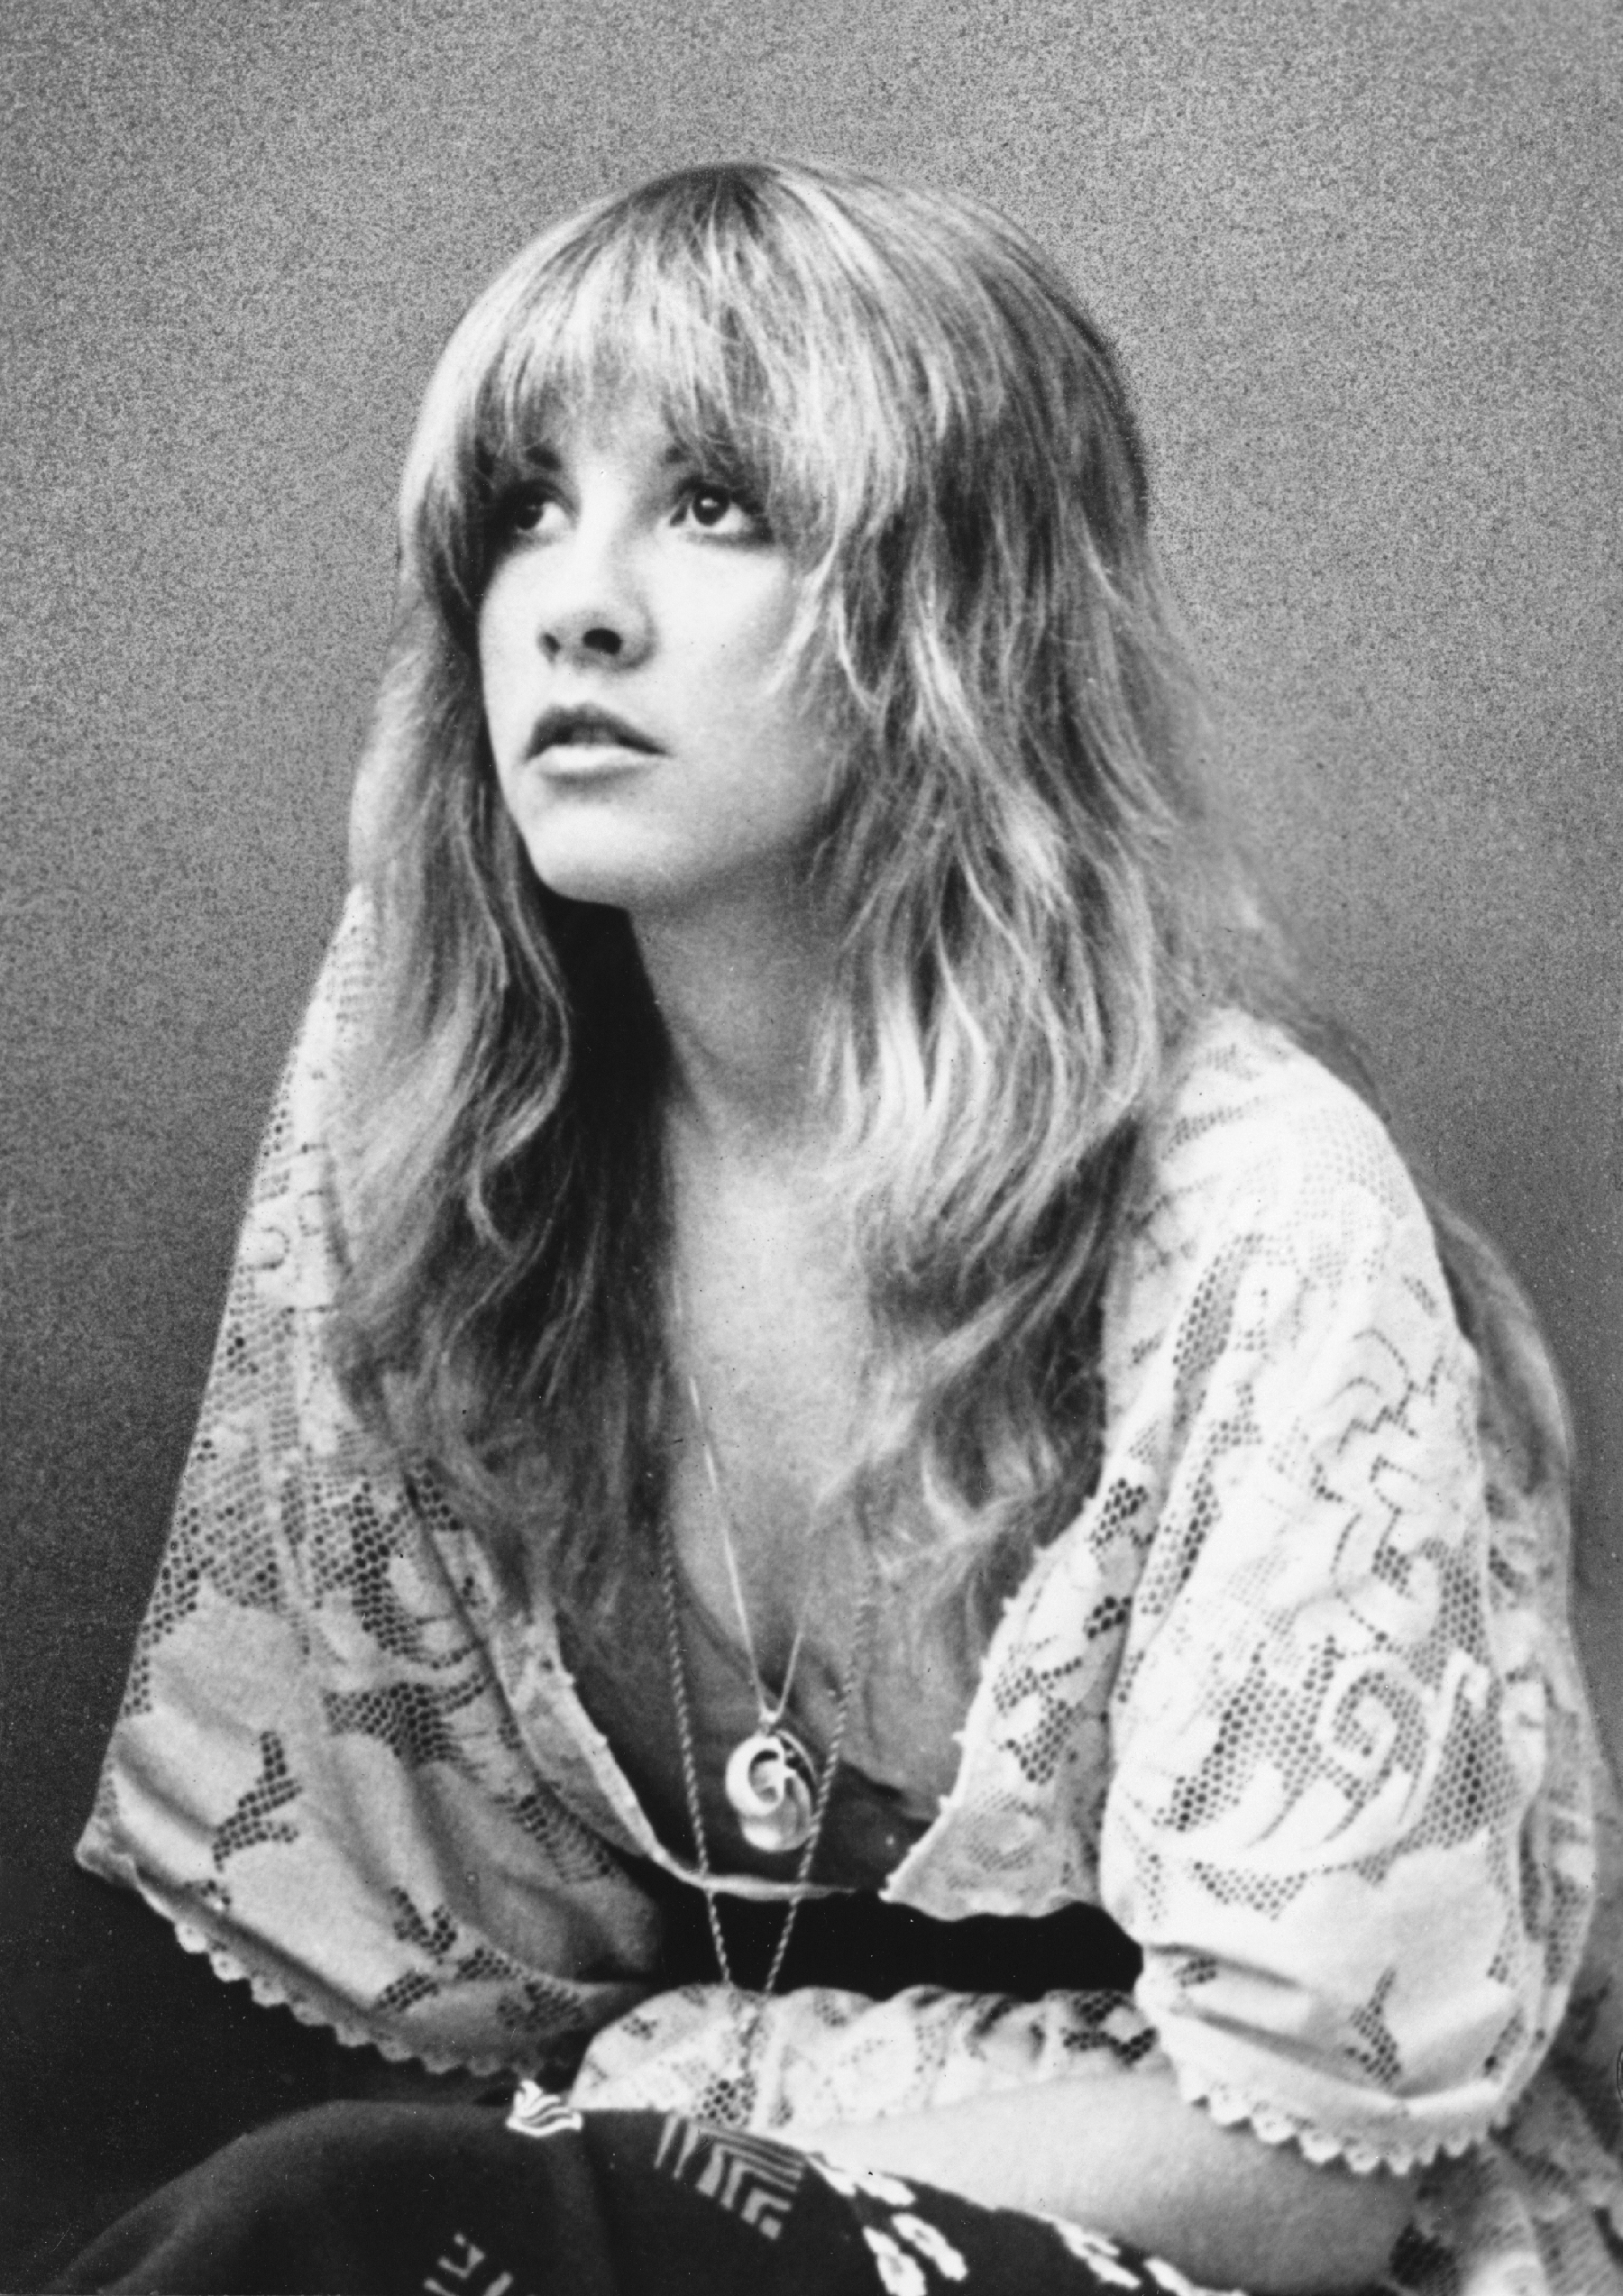 stevie nicks life in photos rolling stone